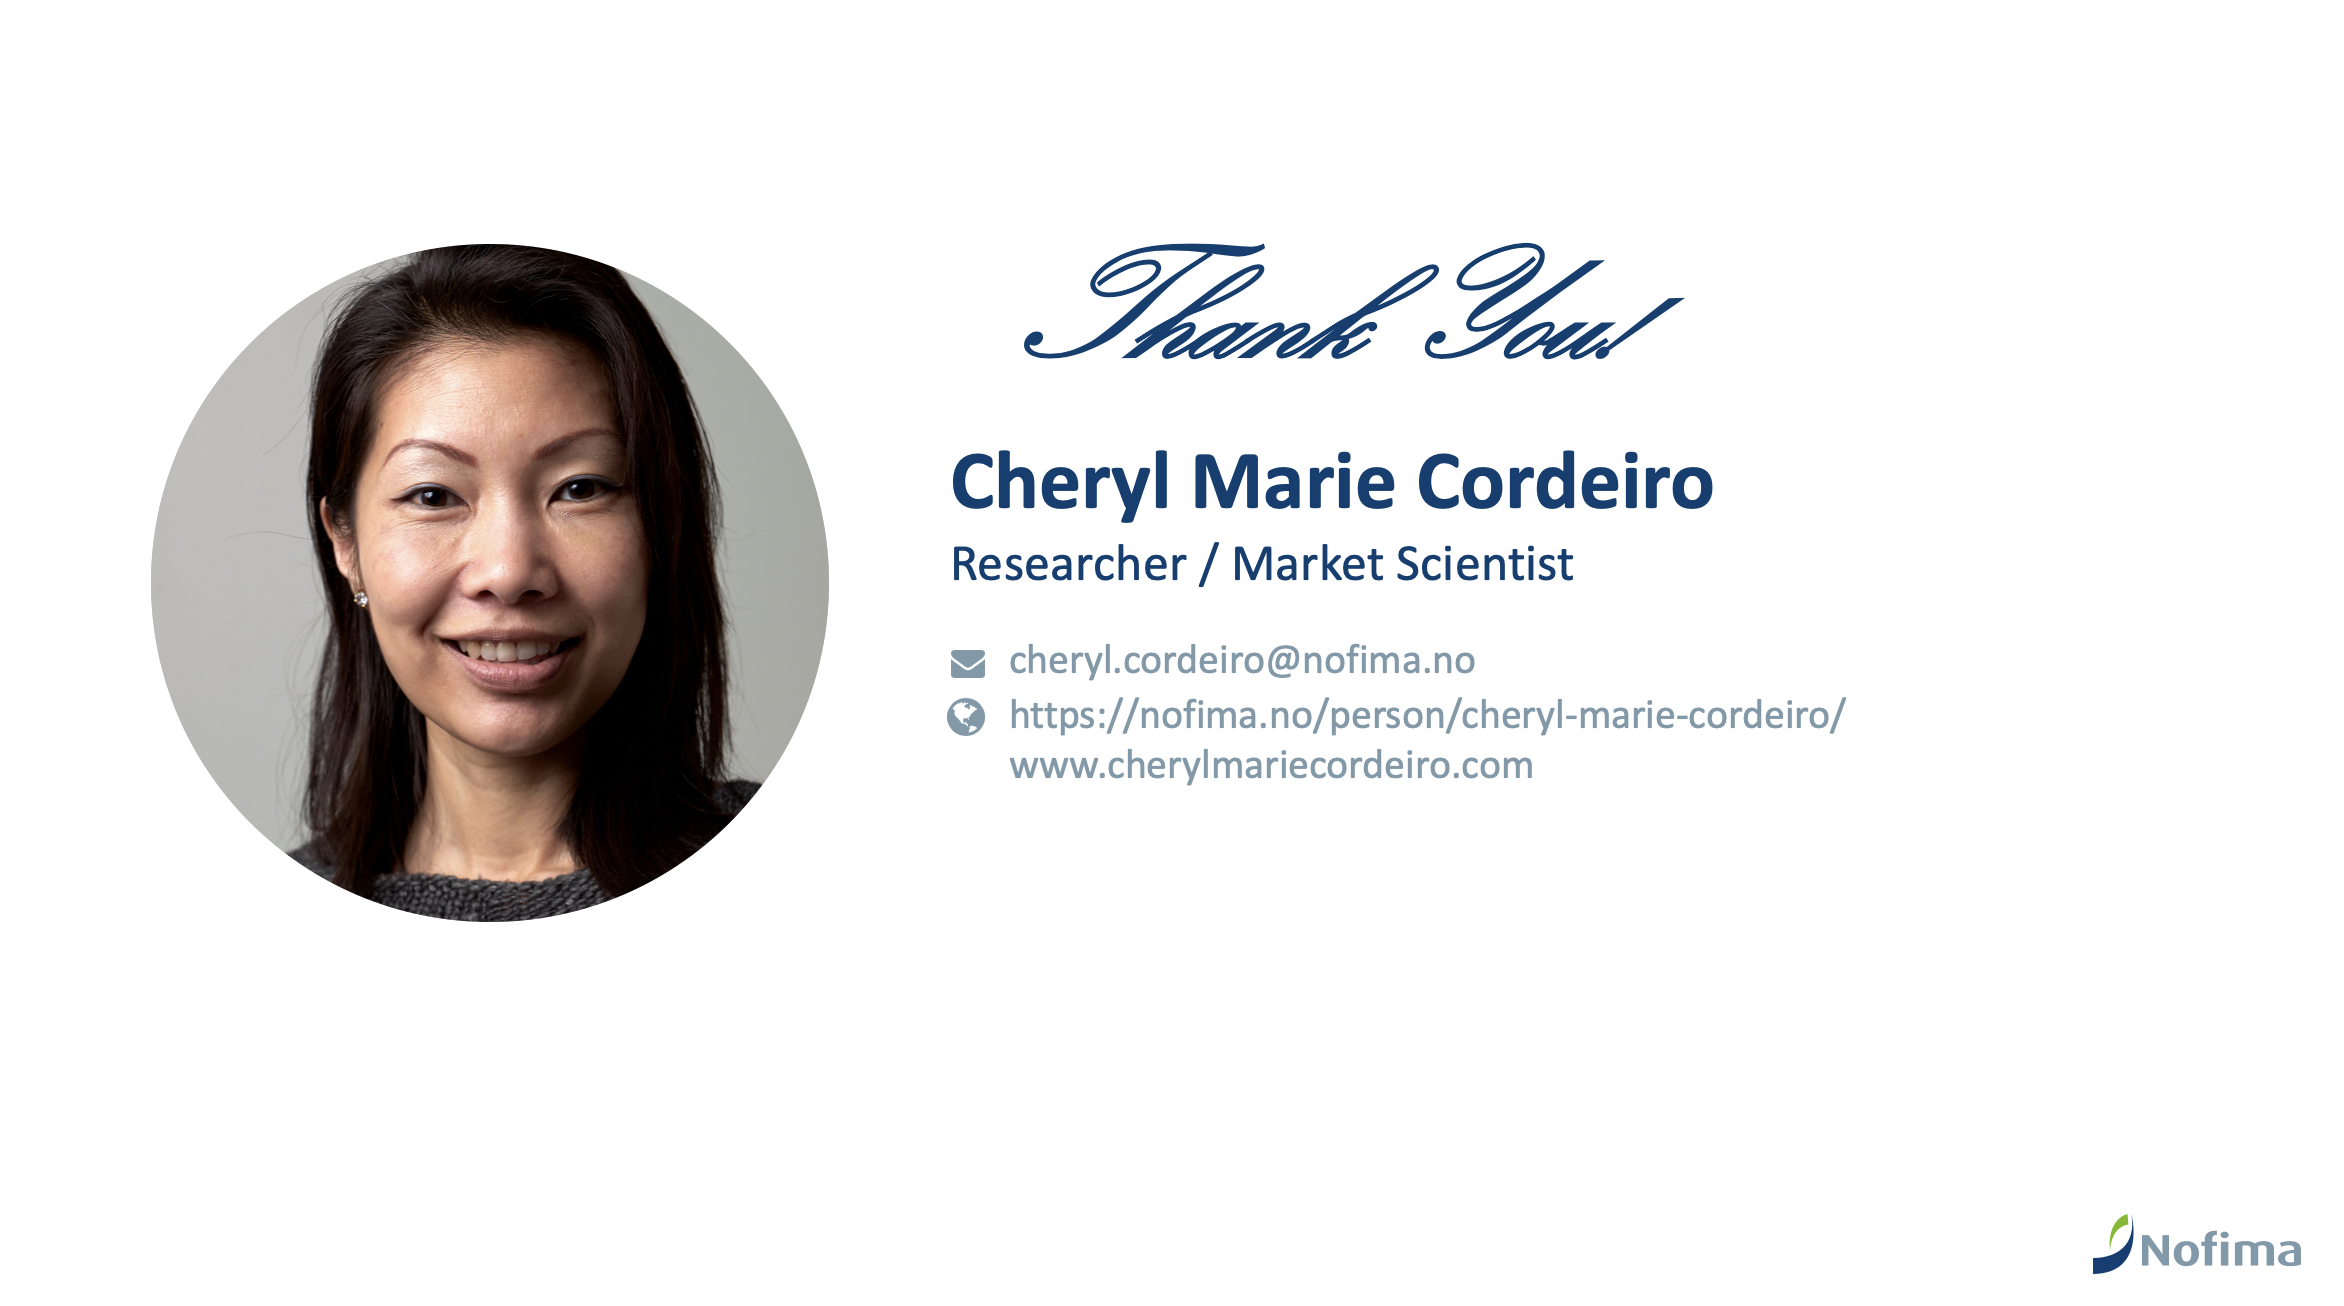 http://www.cherylmariecordeiro.com/wp-content/uploads/2019/11/14.-Screenshot-2019-11-03-at-07.23.32.png